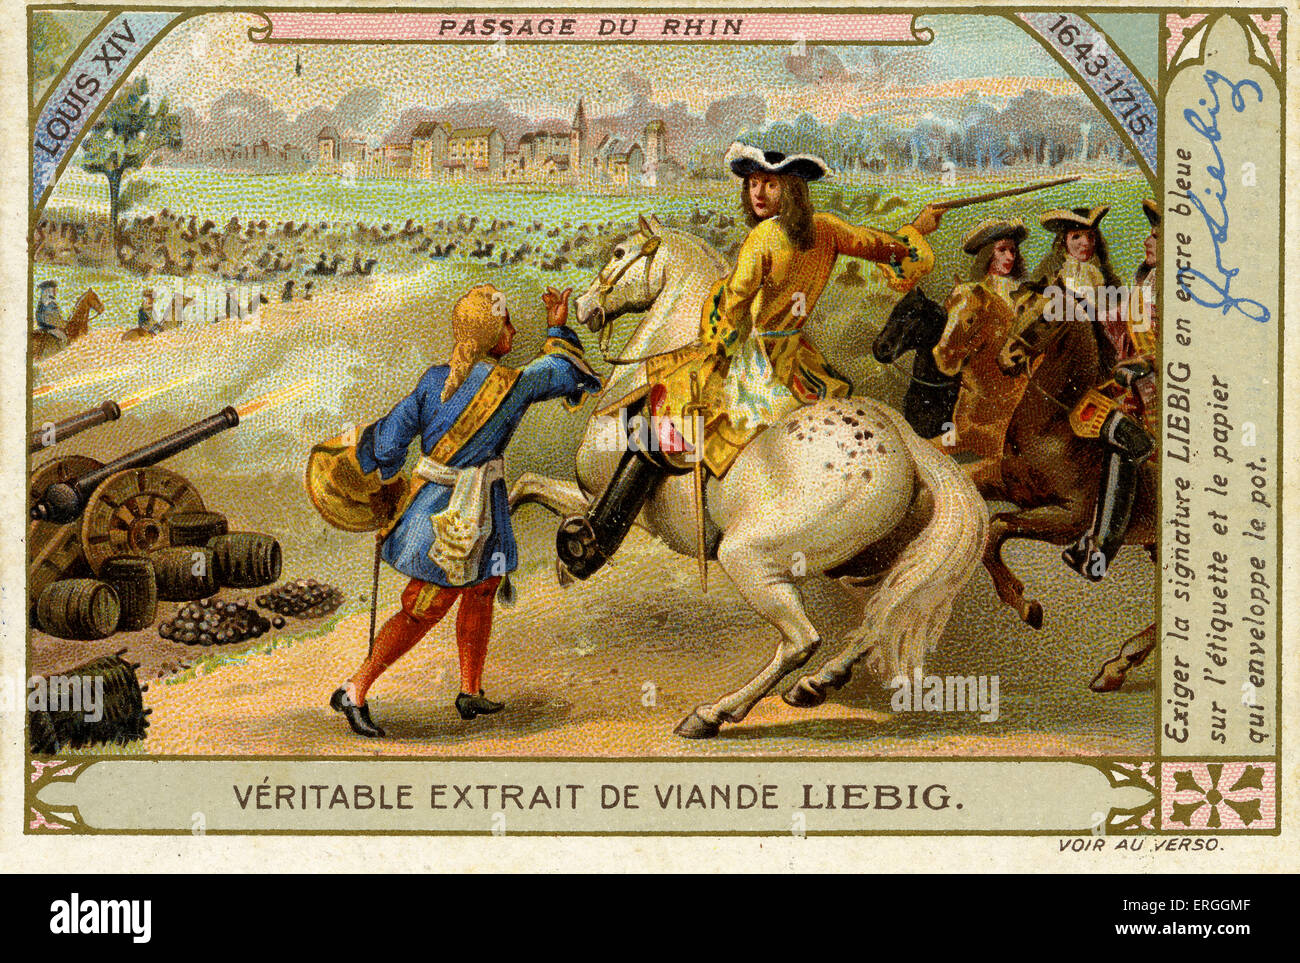 biography of the french king louis xiv Louis xvi has no living descendants louis xvi was the last king of france before the french revolution in all, he had four children, marie thérèse, louis joseph, louis charles, and sophie.